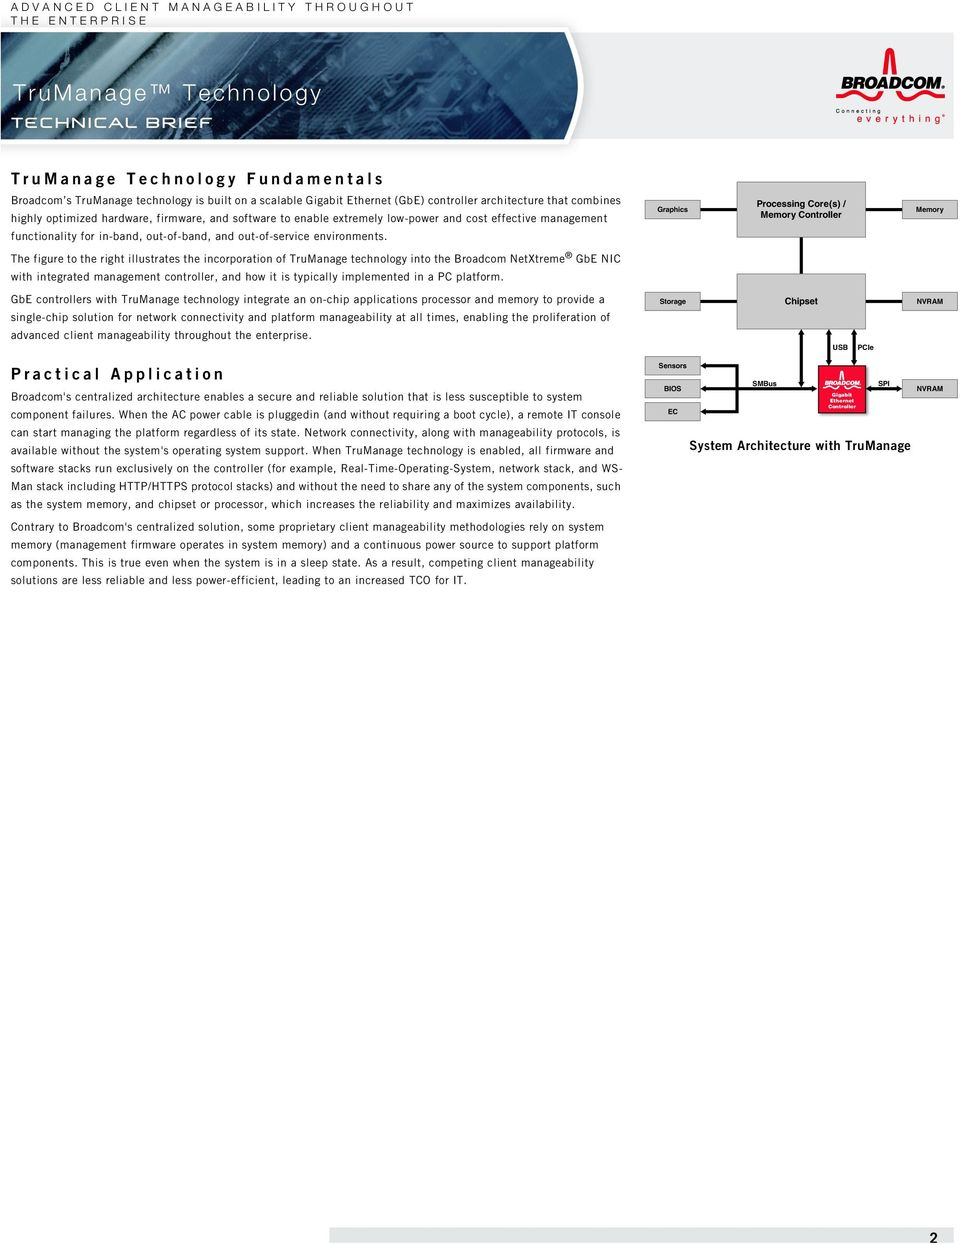 Graphics Processing Core(s) / Memory Controller Memory The figure to the right illustrates the incorporation of TruManage technology into the Broadcom NetXtreme GbE NIC with integrated management